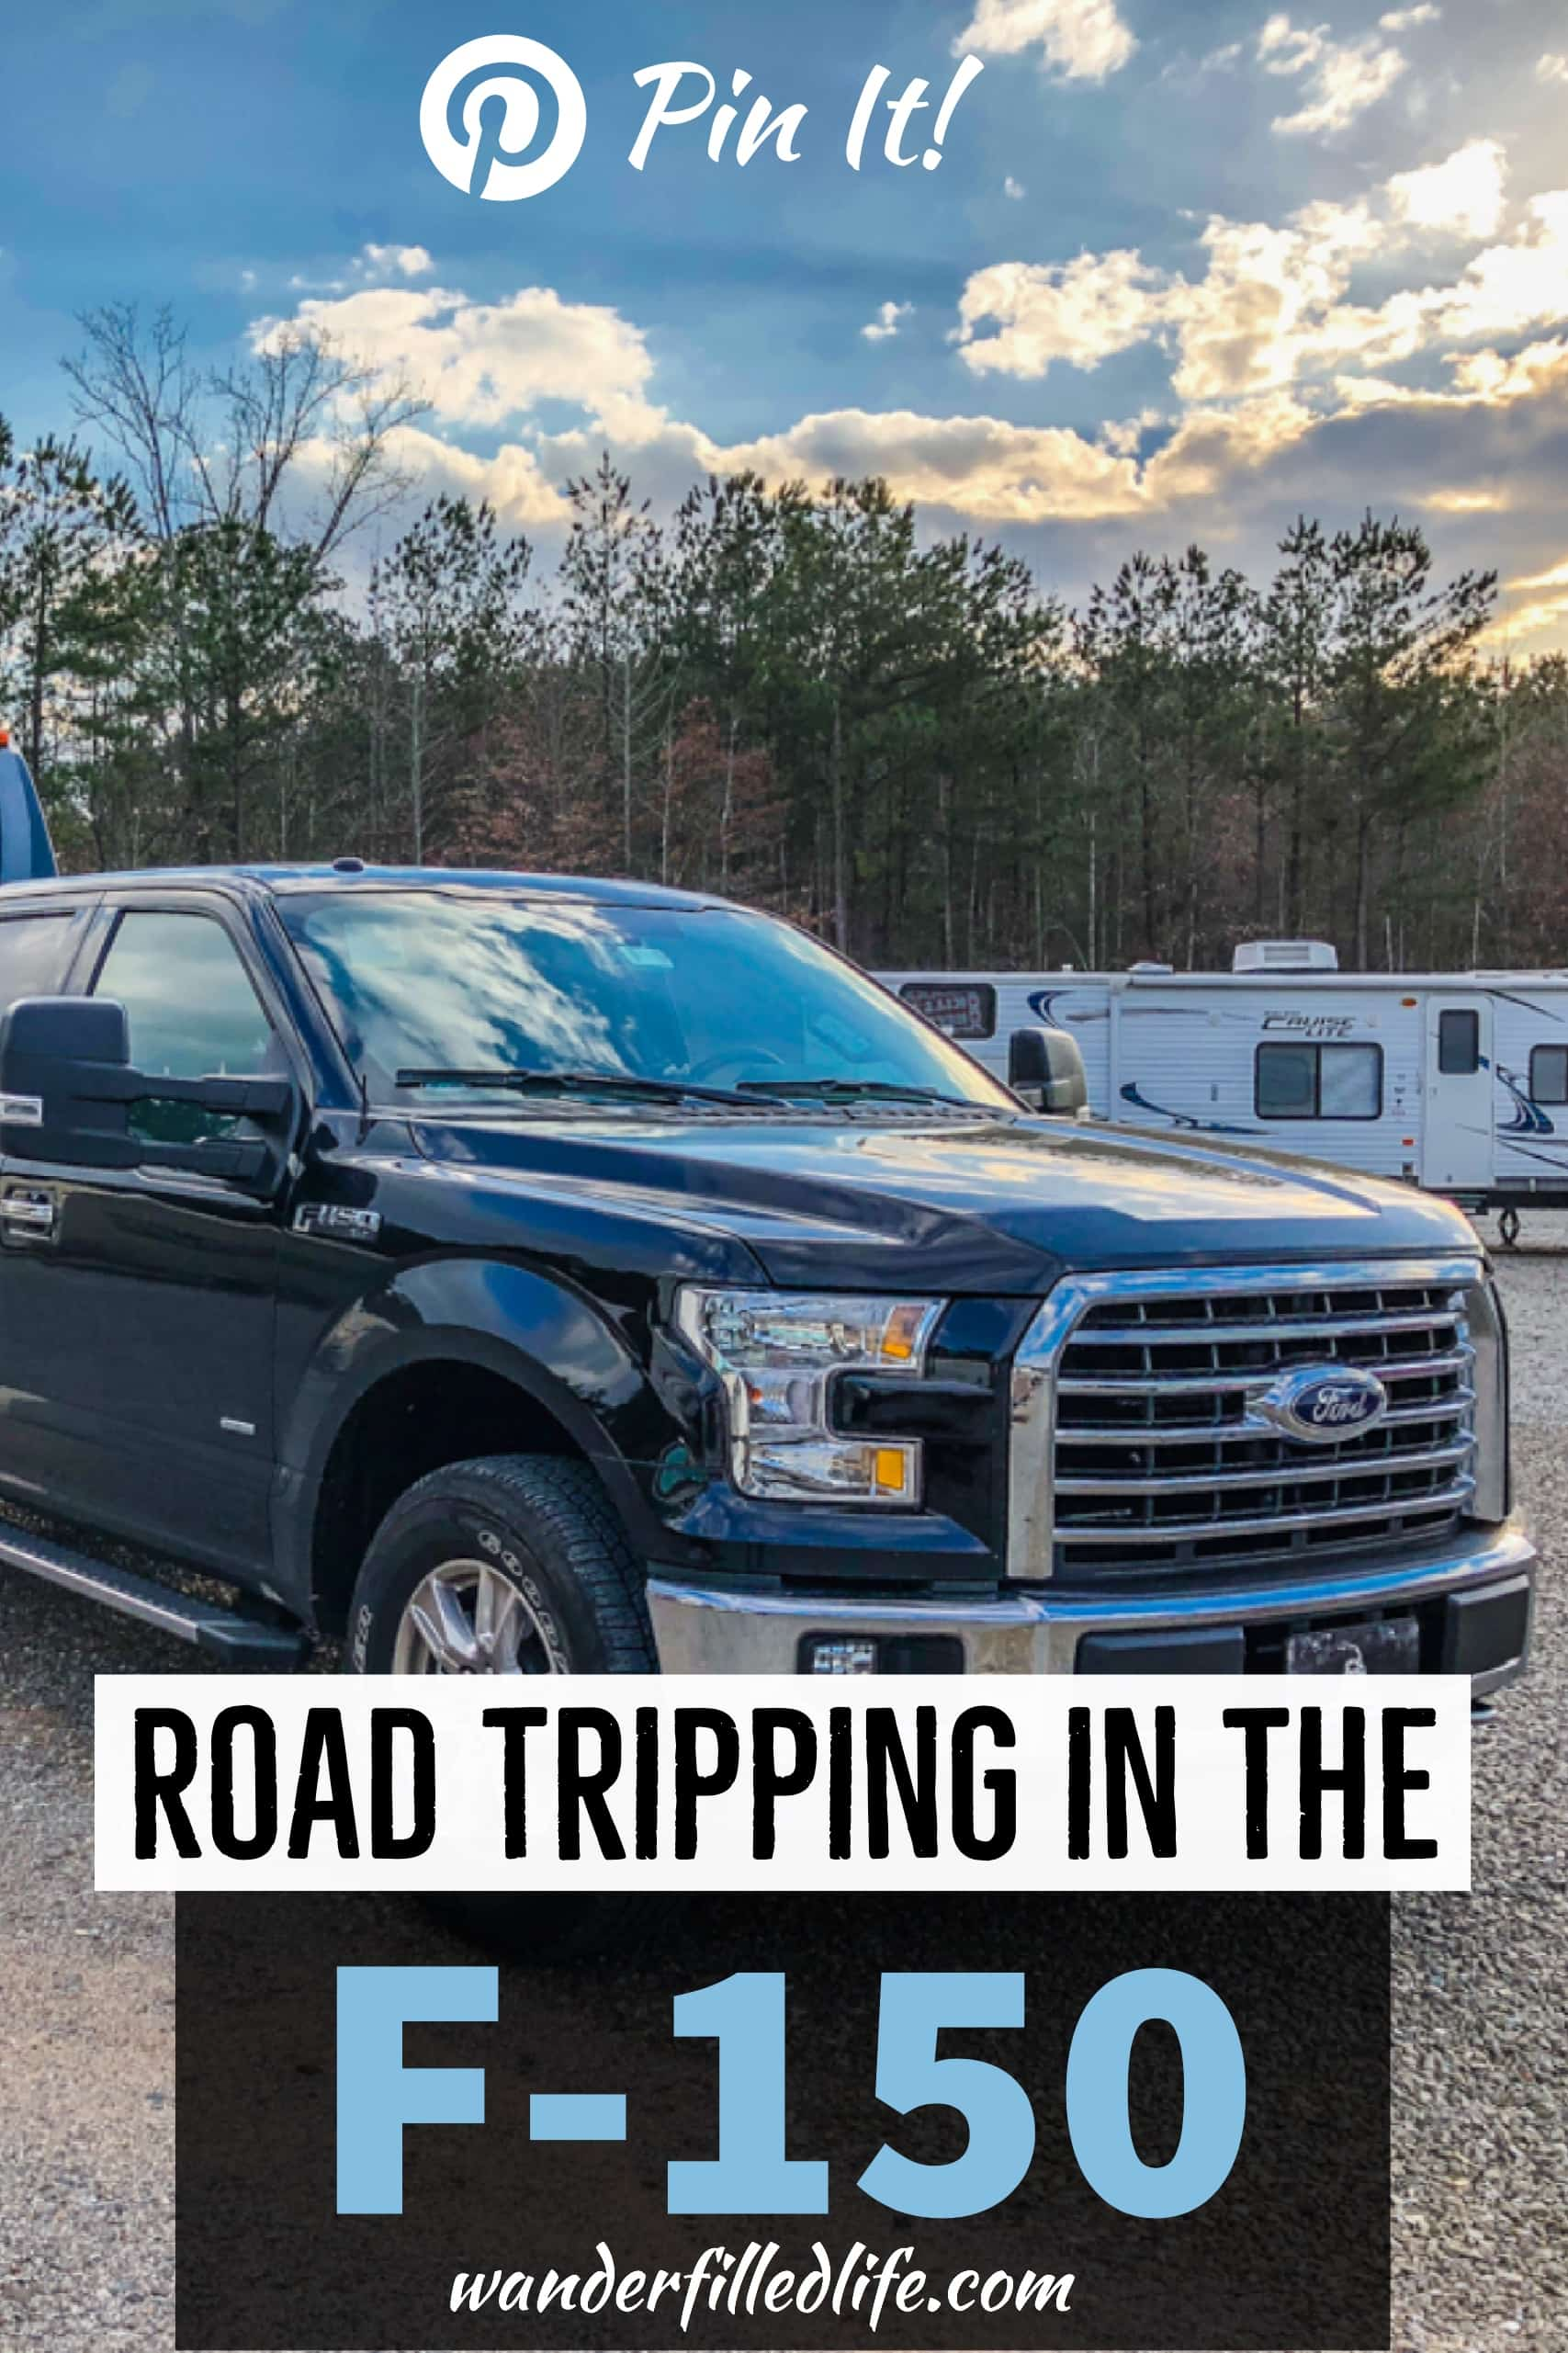 After two road trips in our new 2017 Ford F-150, there's a lot to like, even over our old truck. It gets better mileage, has great electronics and a cool trailer back up system. We also look at some things which can make your next road trip better, like the NC Quick Pass for tolls on the East Coast.